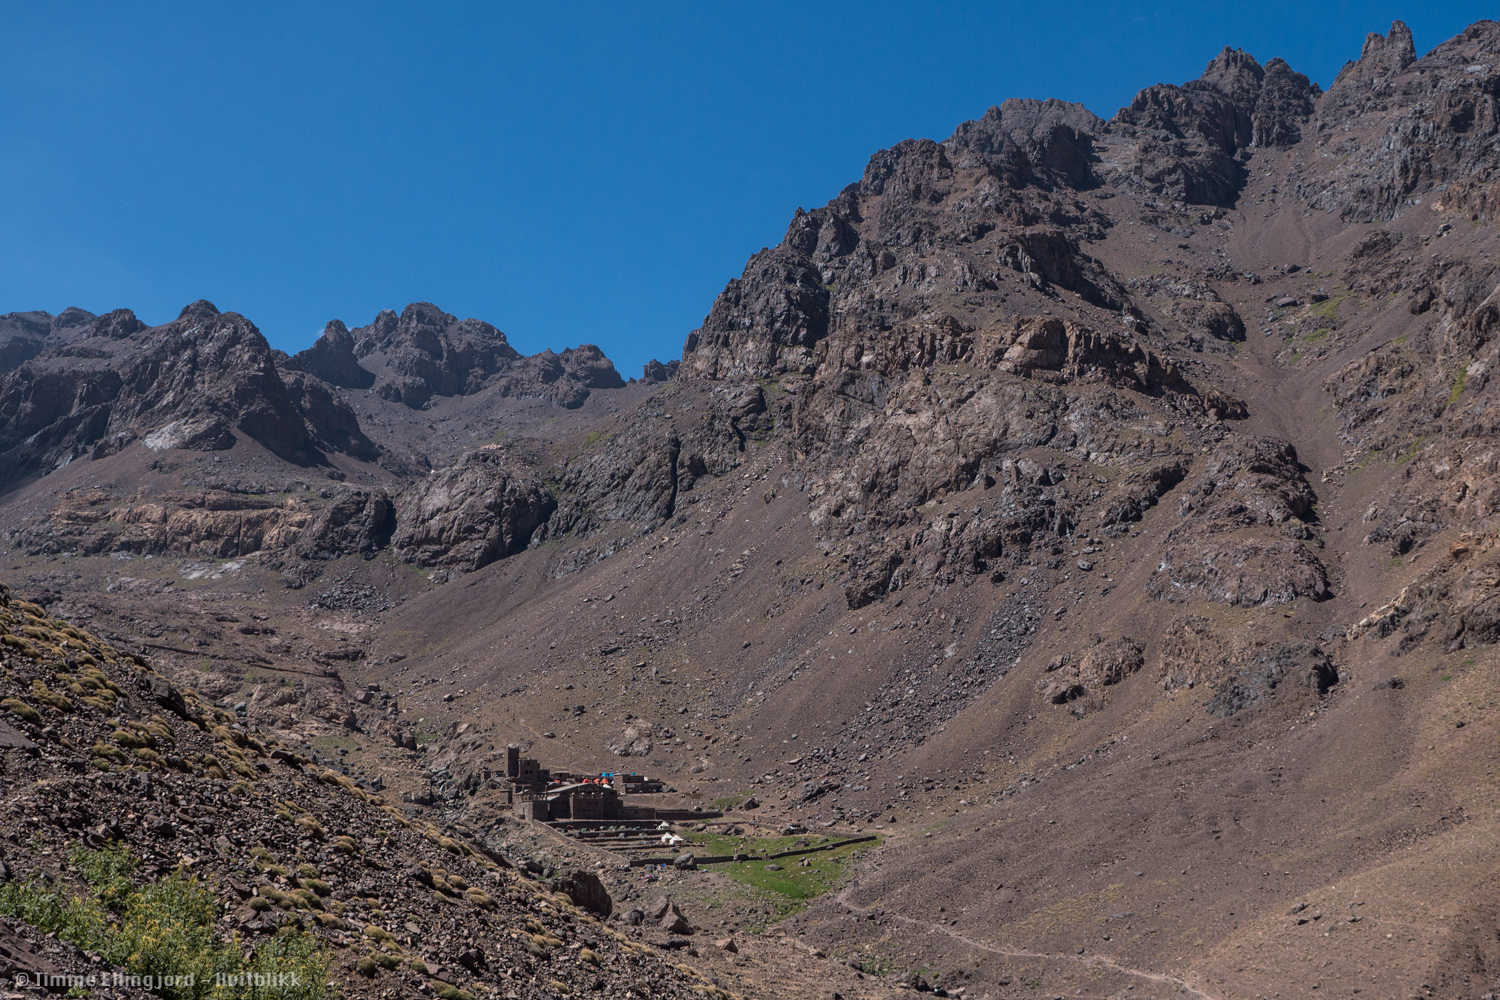 The french alpine clubs mountain refuge, at the foot of Jebel Toubkal. The refuge was taken by an avalanche some years ago, but are still an popular destination both winter and summer.